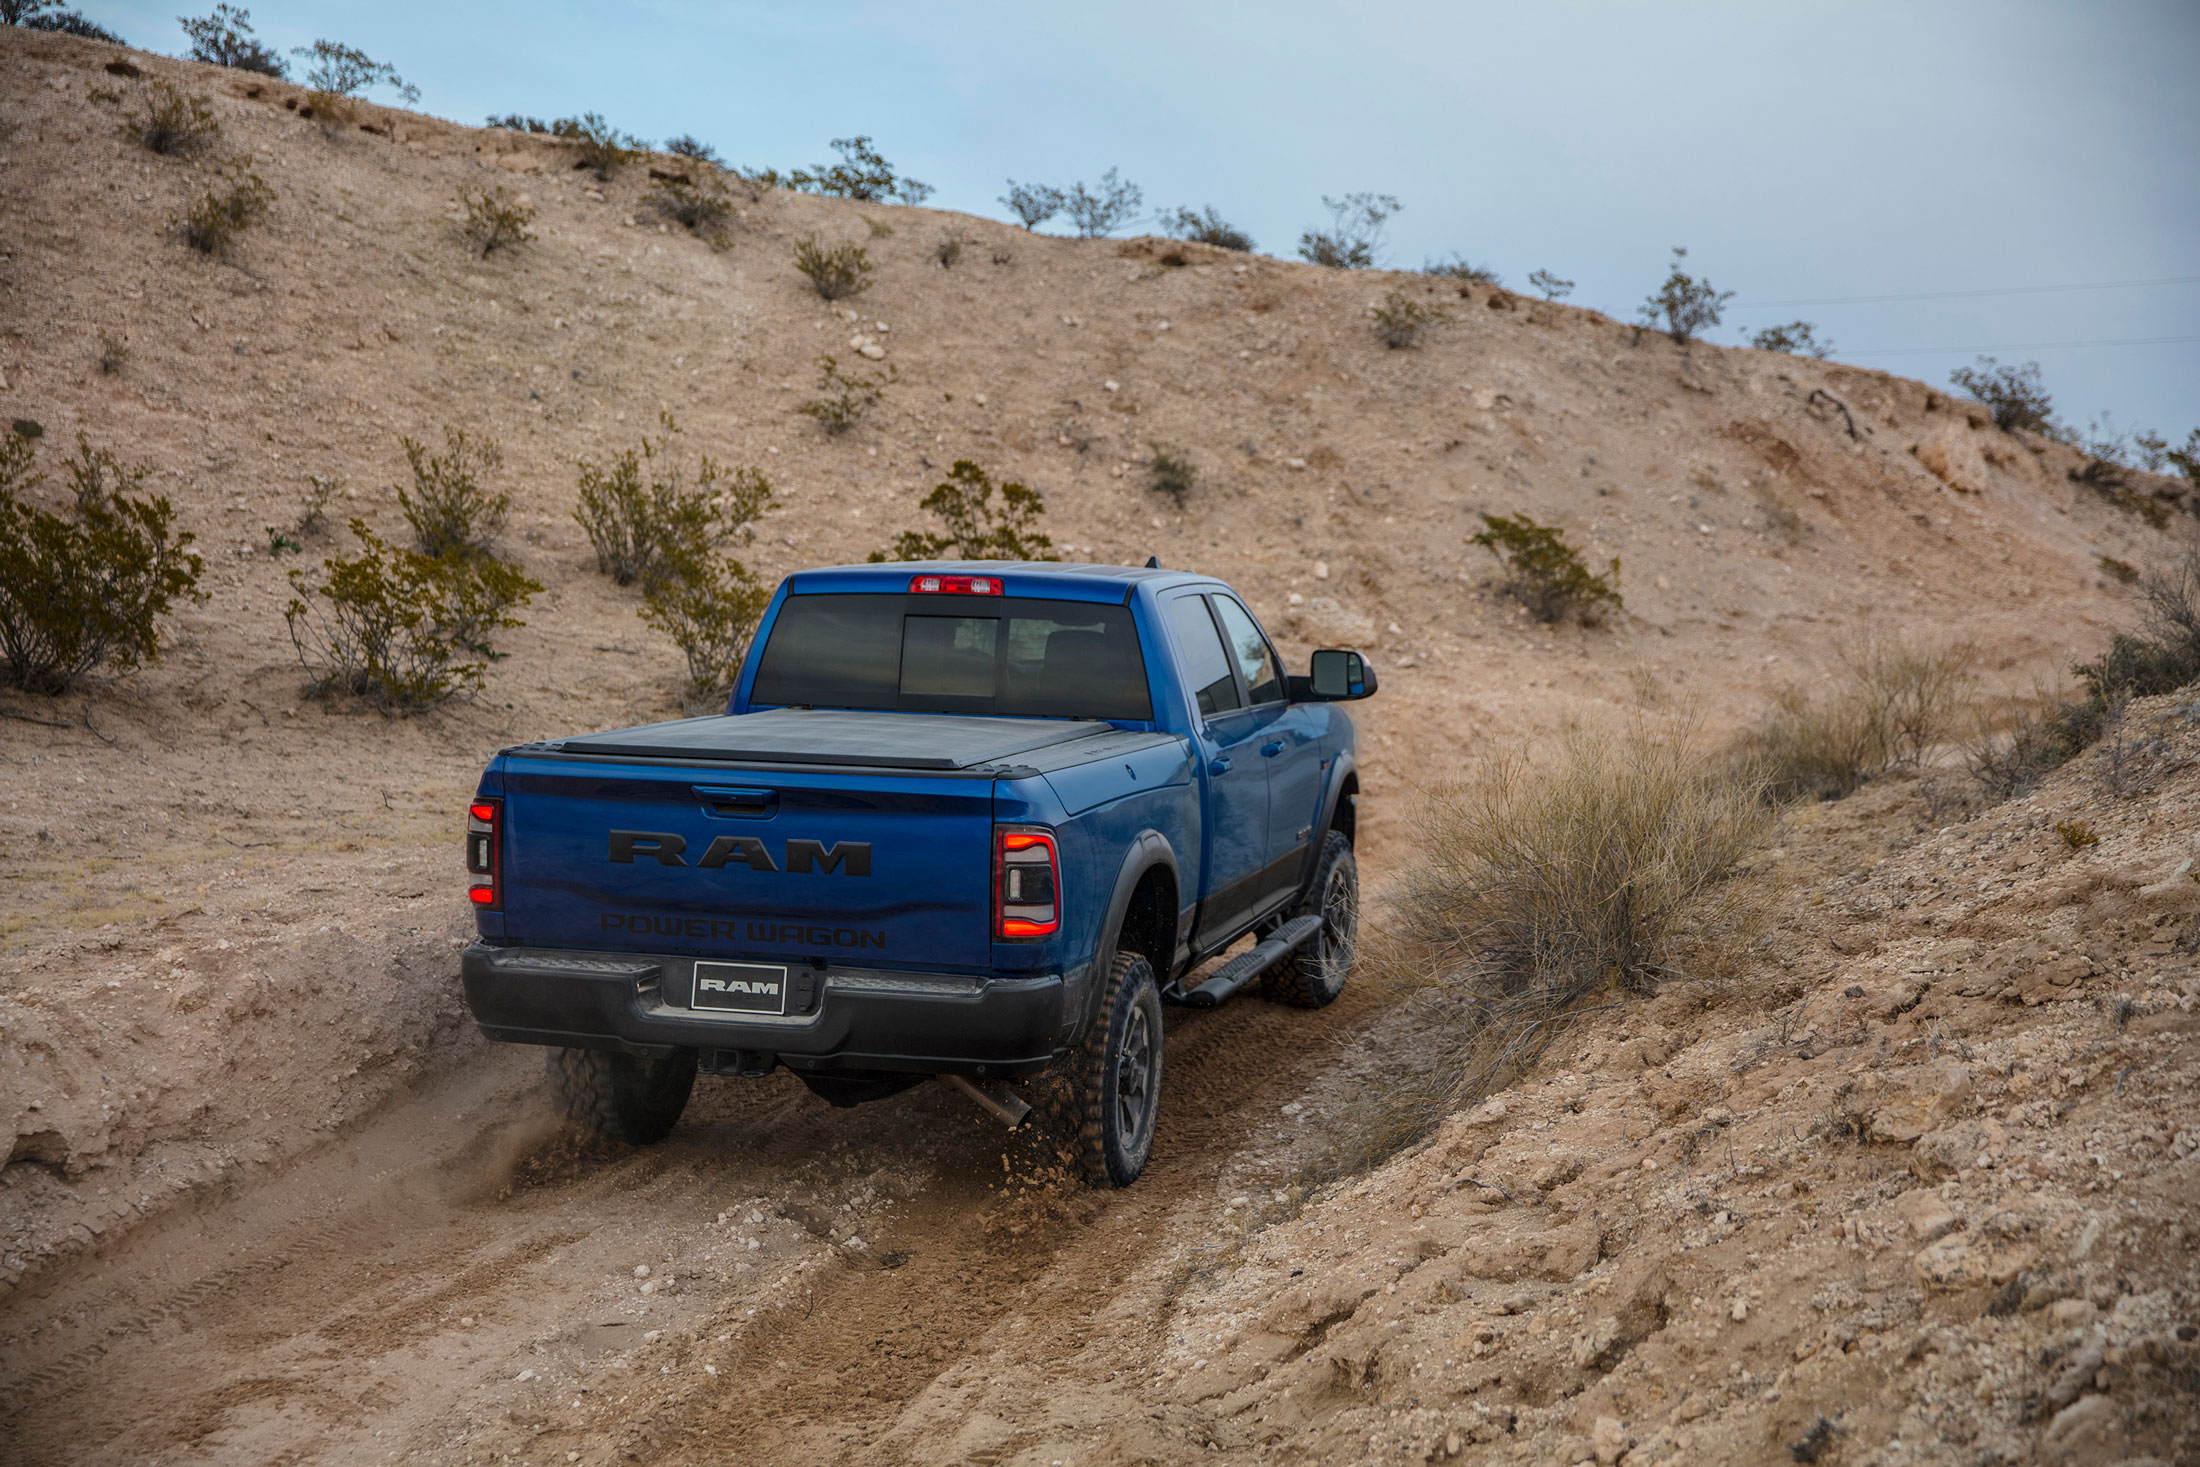 2019 RAM Power Wagon rear 3/4 driving